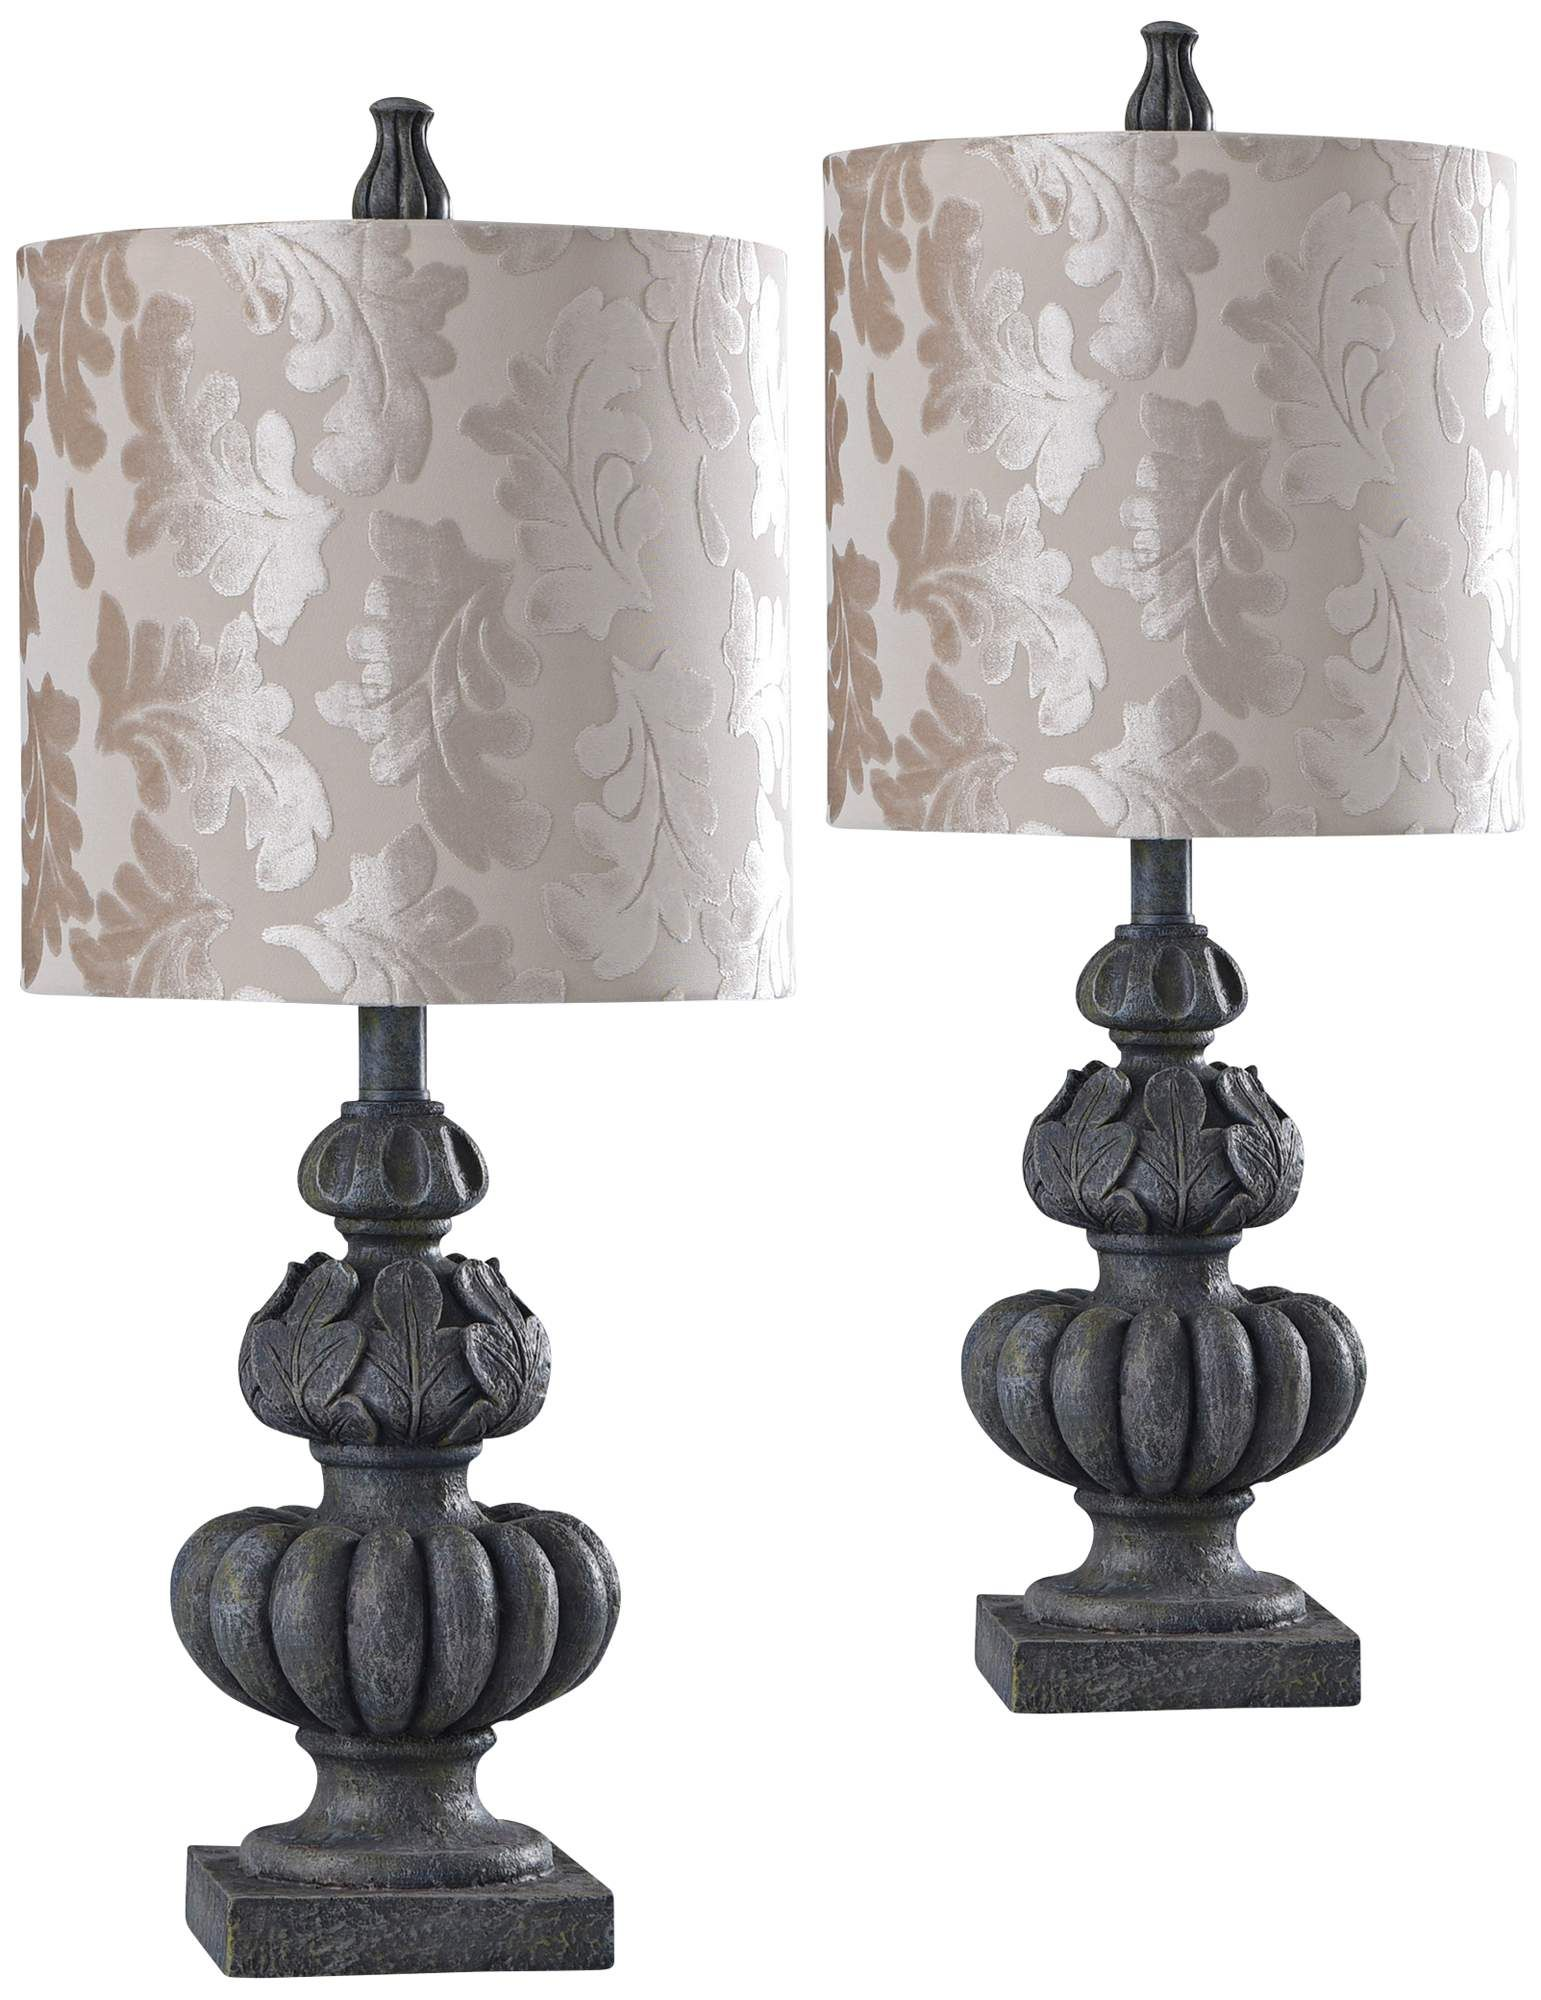 Rye Slate Stone Table Lamp With Acanthus Leaf Print Shade Di 2020